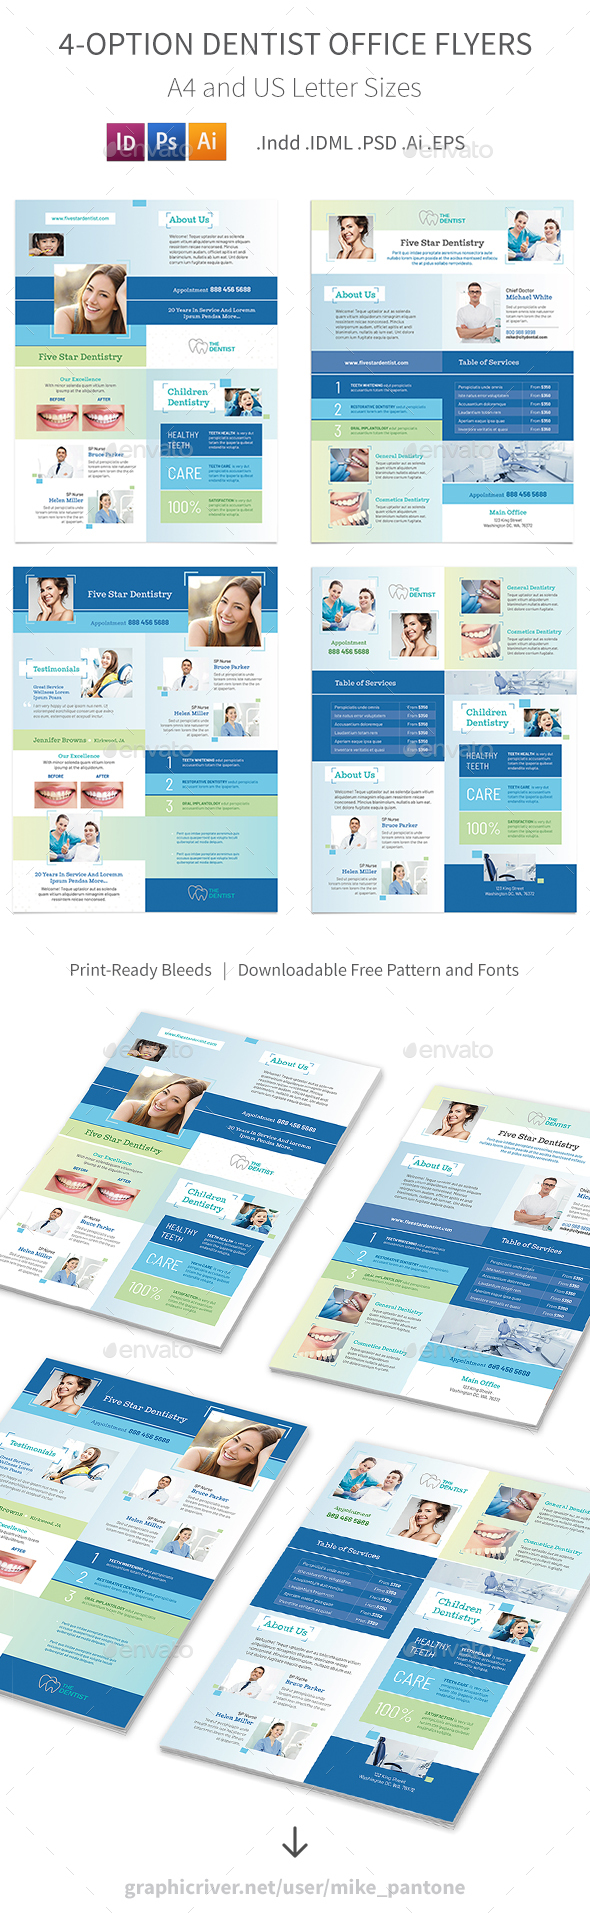 GraphicRiver Dentist Office Flyers 5 4 Options 21021328